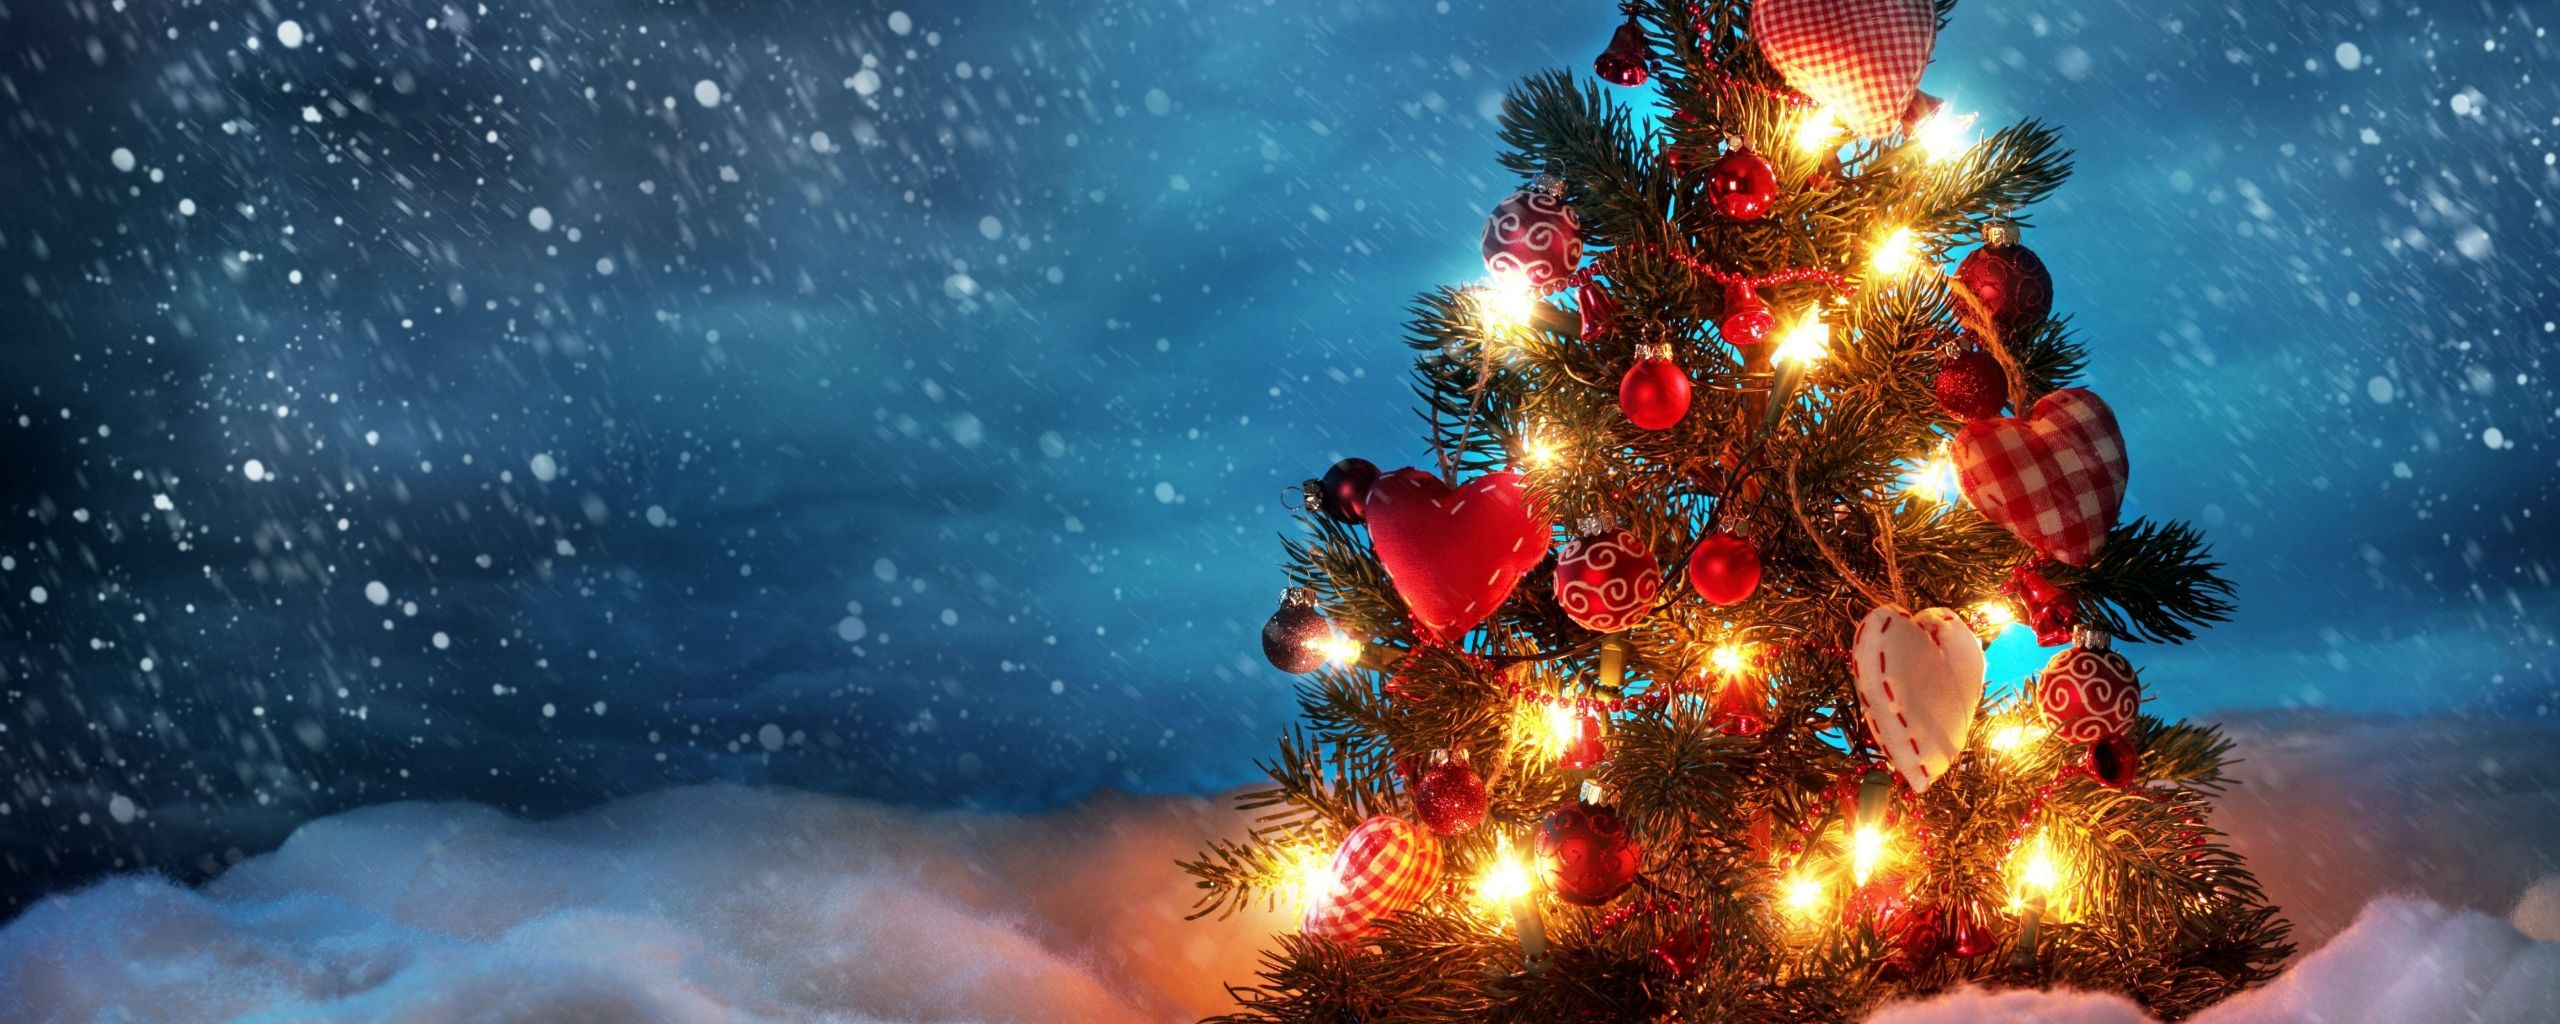 Christmas High Resolution Dual Monitor Wallpapers Top Free Christmas High Resolution Dual Monitor Backgrounds Wallpaperaccess